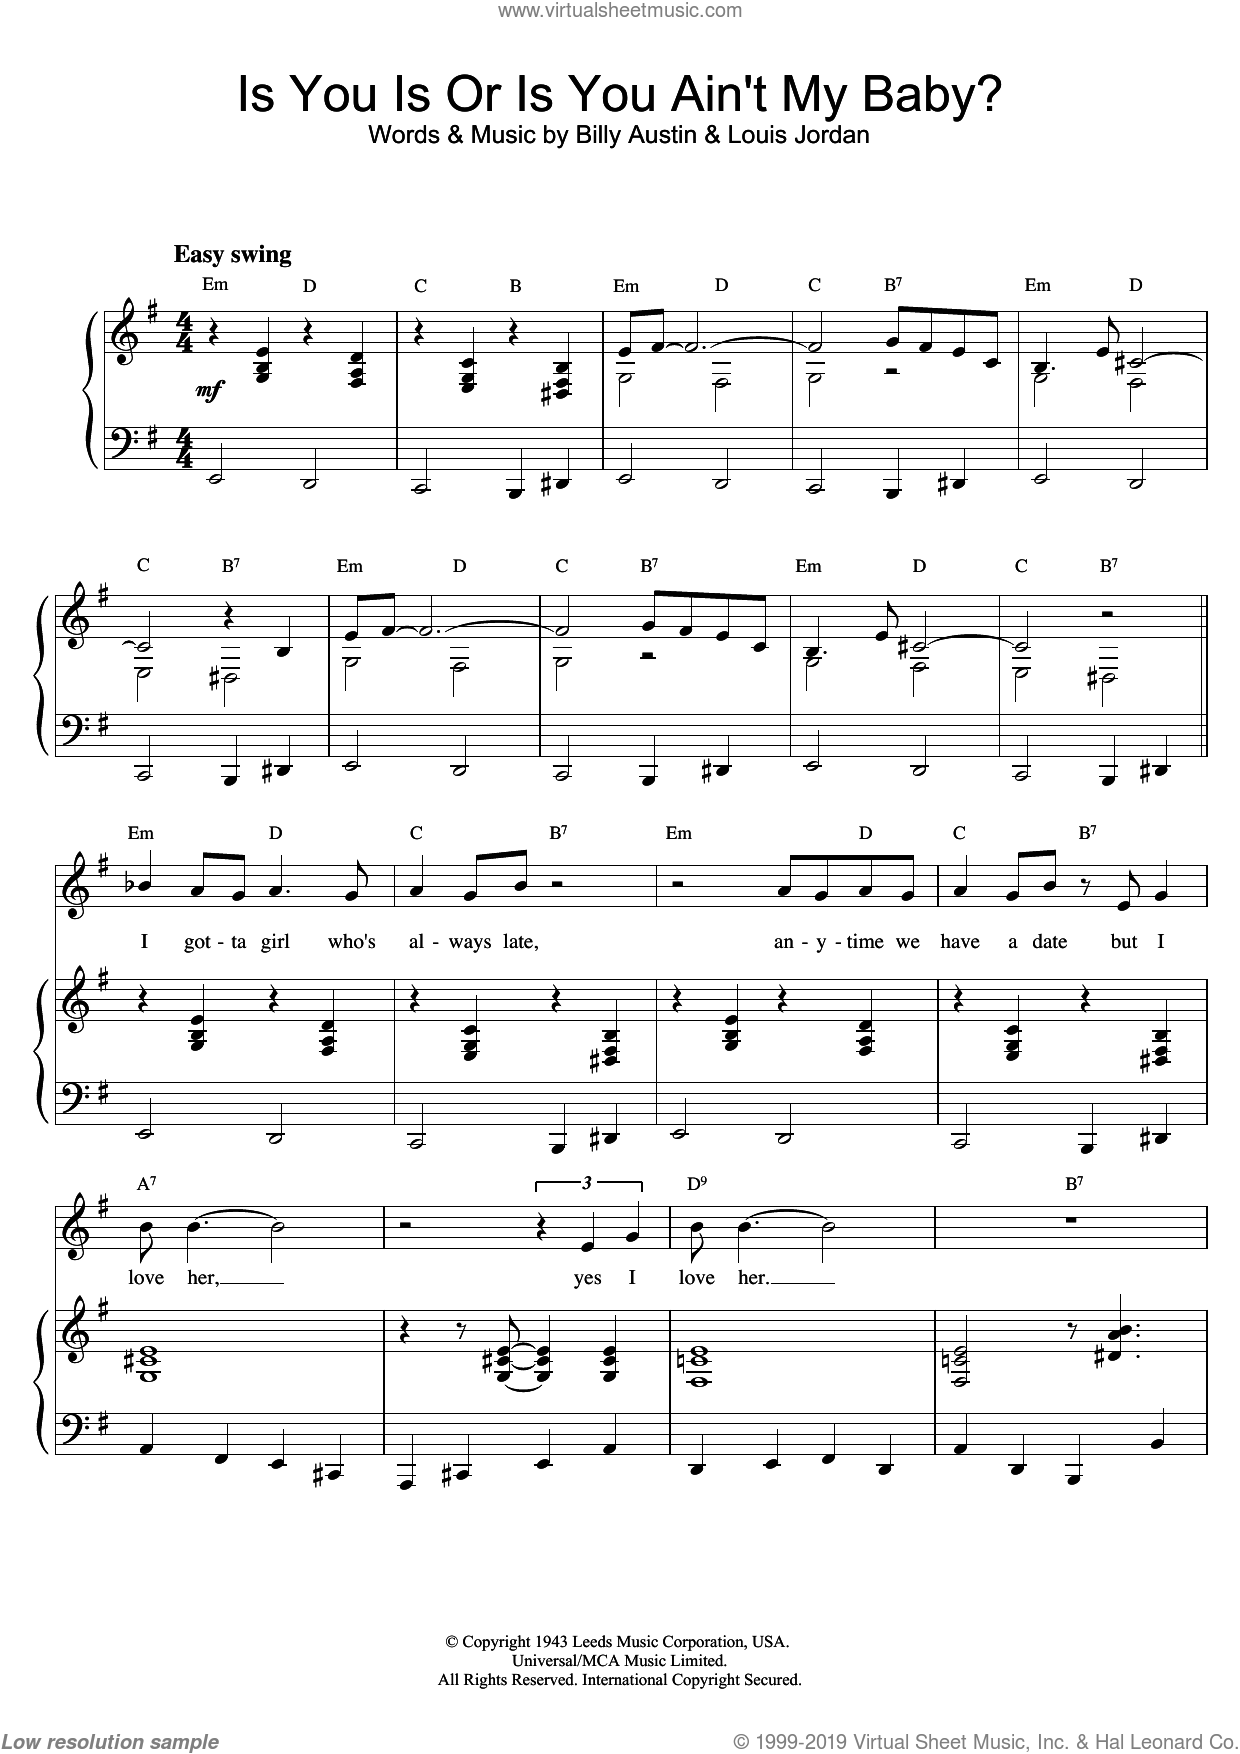 Is You Is Or Is You Ain't (My Baby)? sheet music for voice, piano or guitar by Louis Jordan